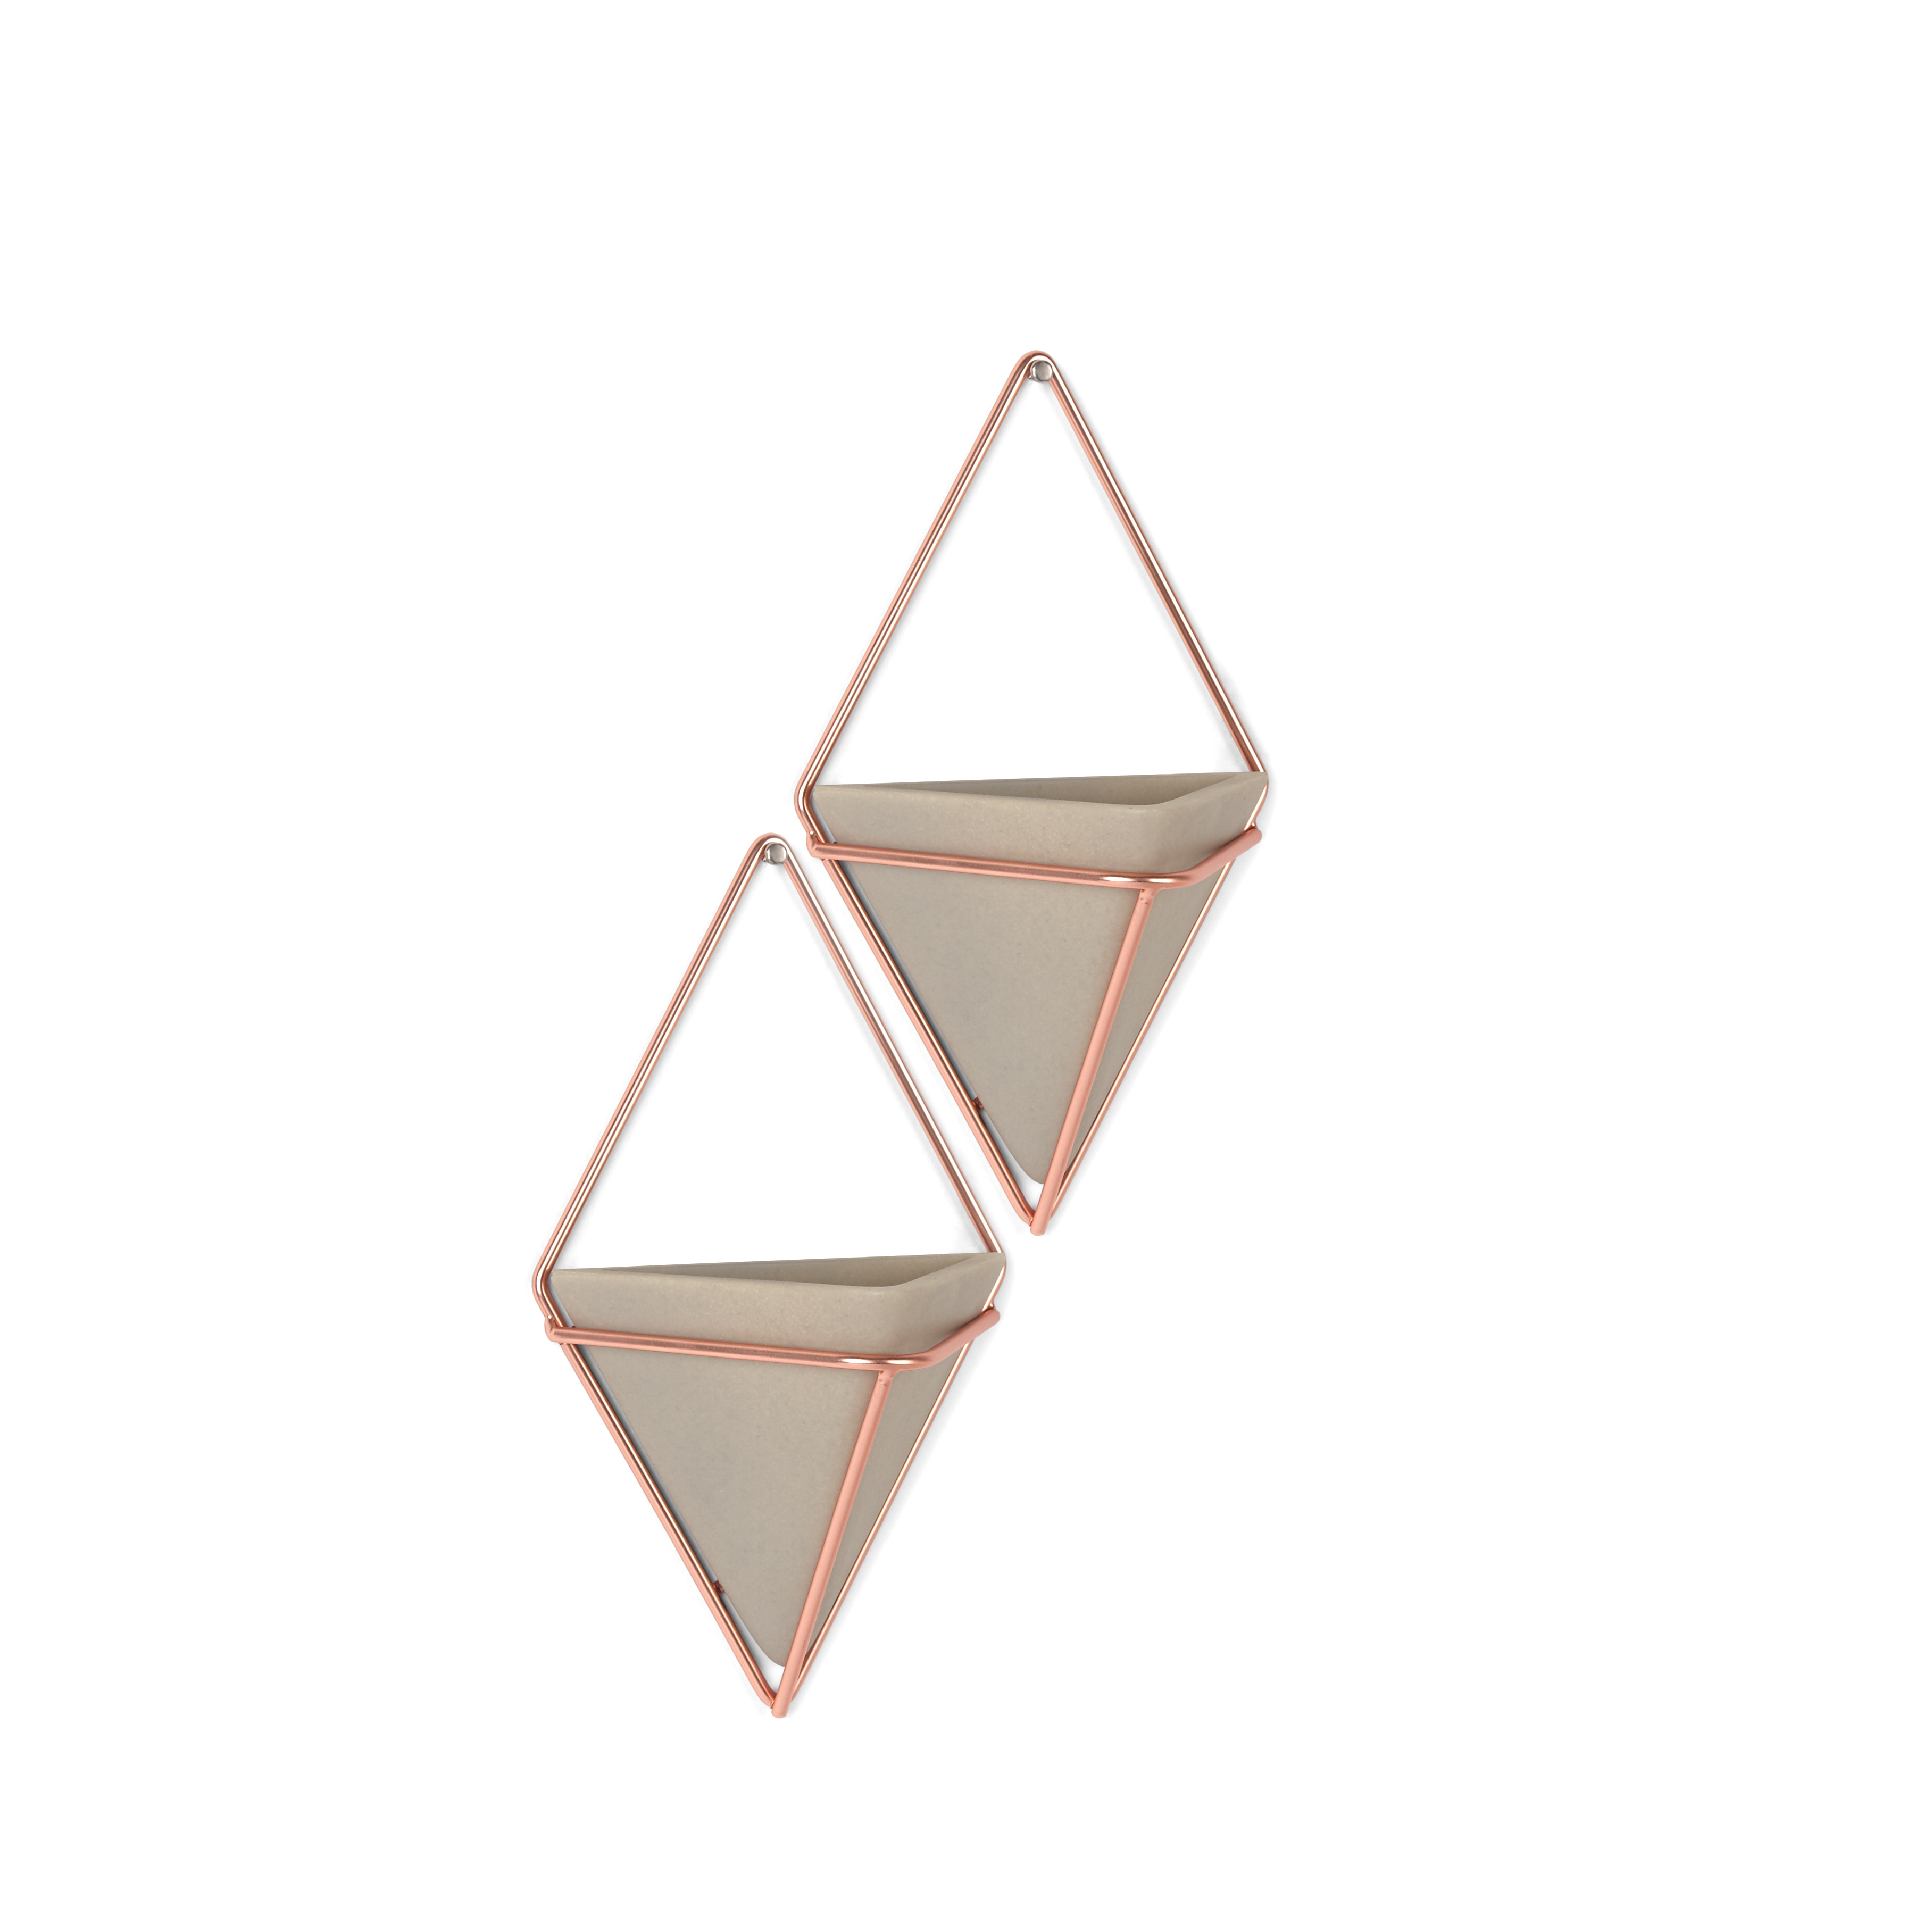 Newest 2 Piece Trigg Wall Decor Sets (Set Of 2) Pertaining To Umbra Trigg Hanging Planter Vase & Geometric Wall Decor Container (View 11 of 20)